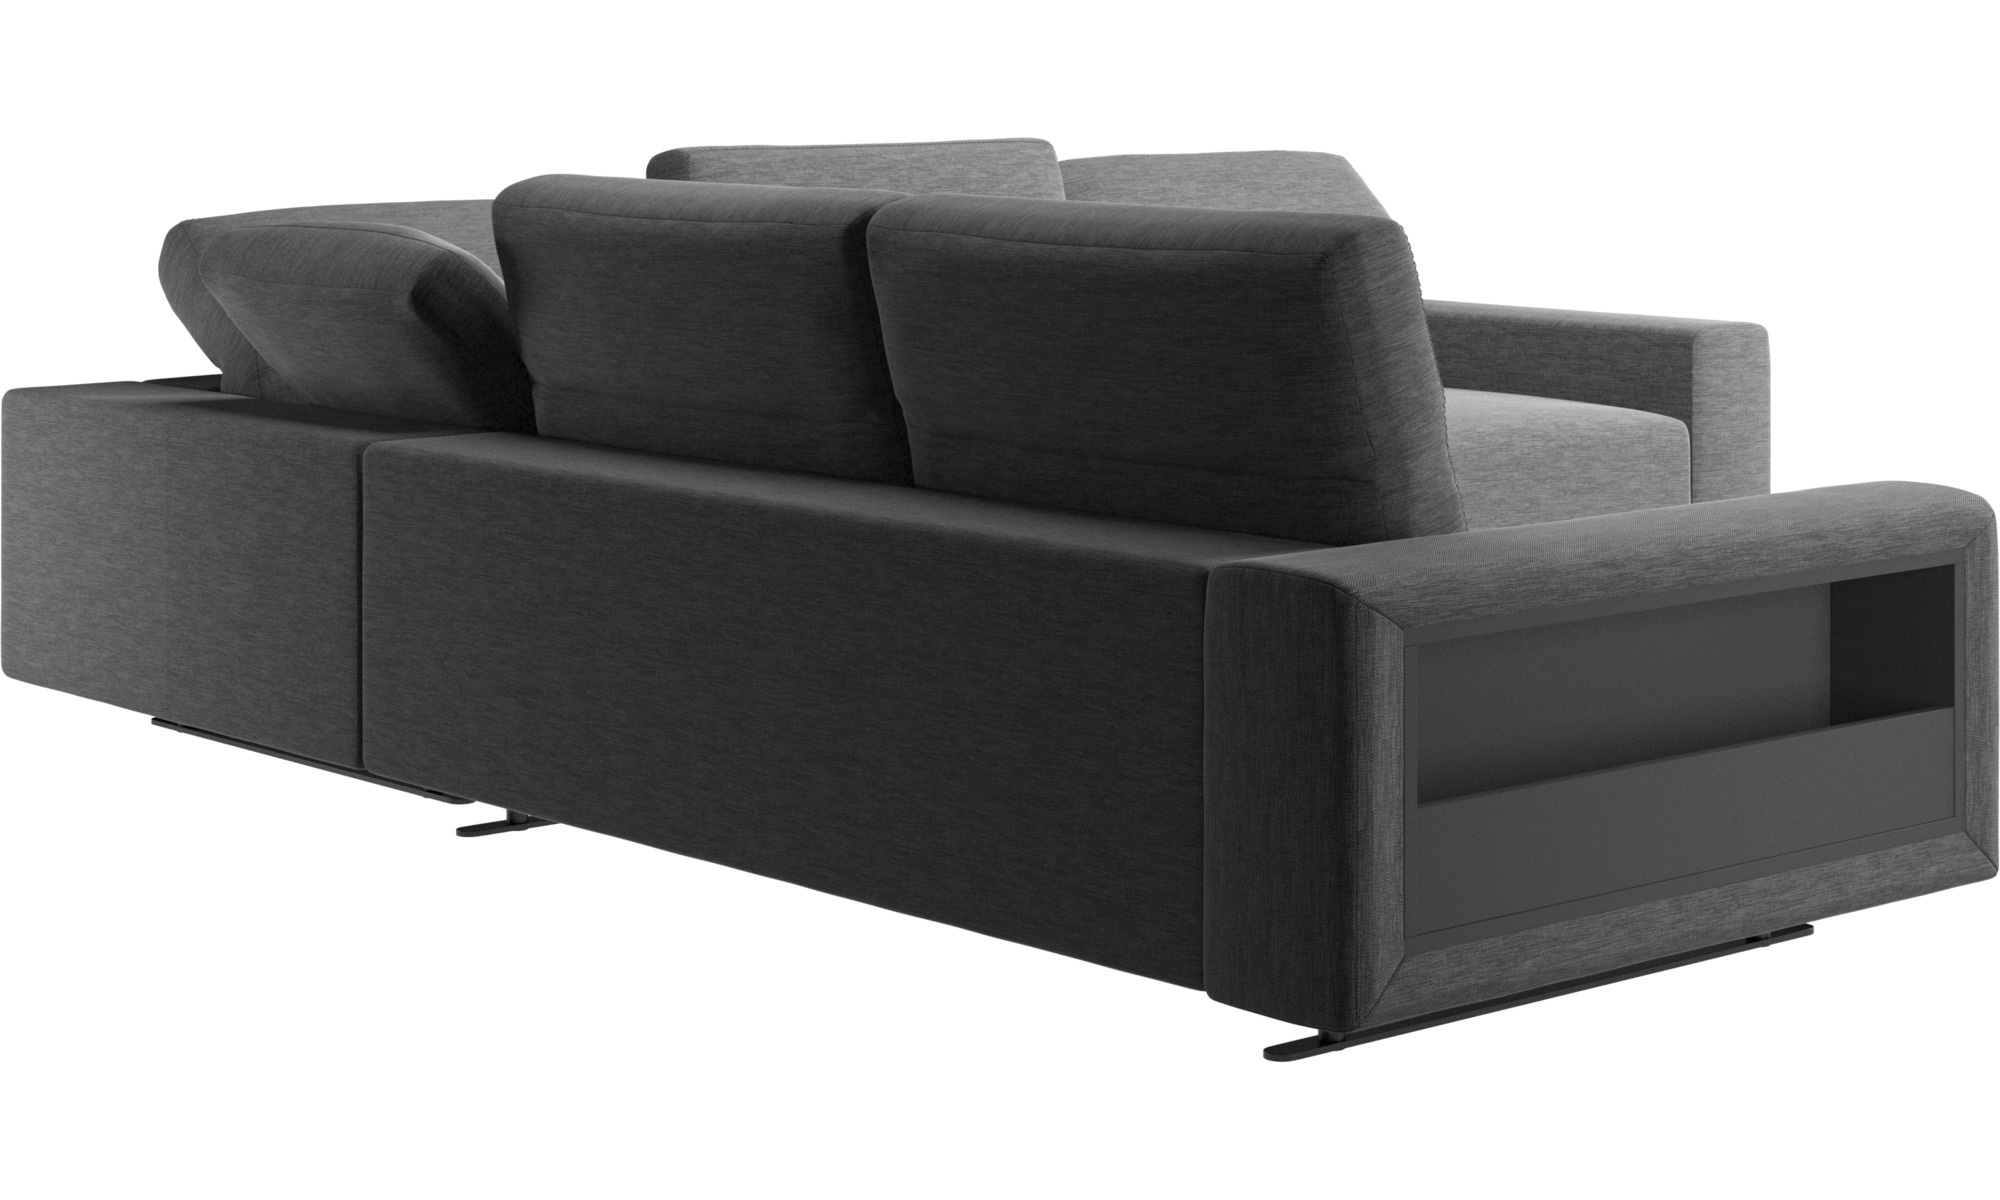 sofa mit verstellbarer r ckenlehne napoli stoff hampton sofa mit verstellbar. Black Bedroom Furniture Sets. Home Design Ideas